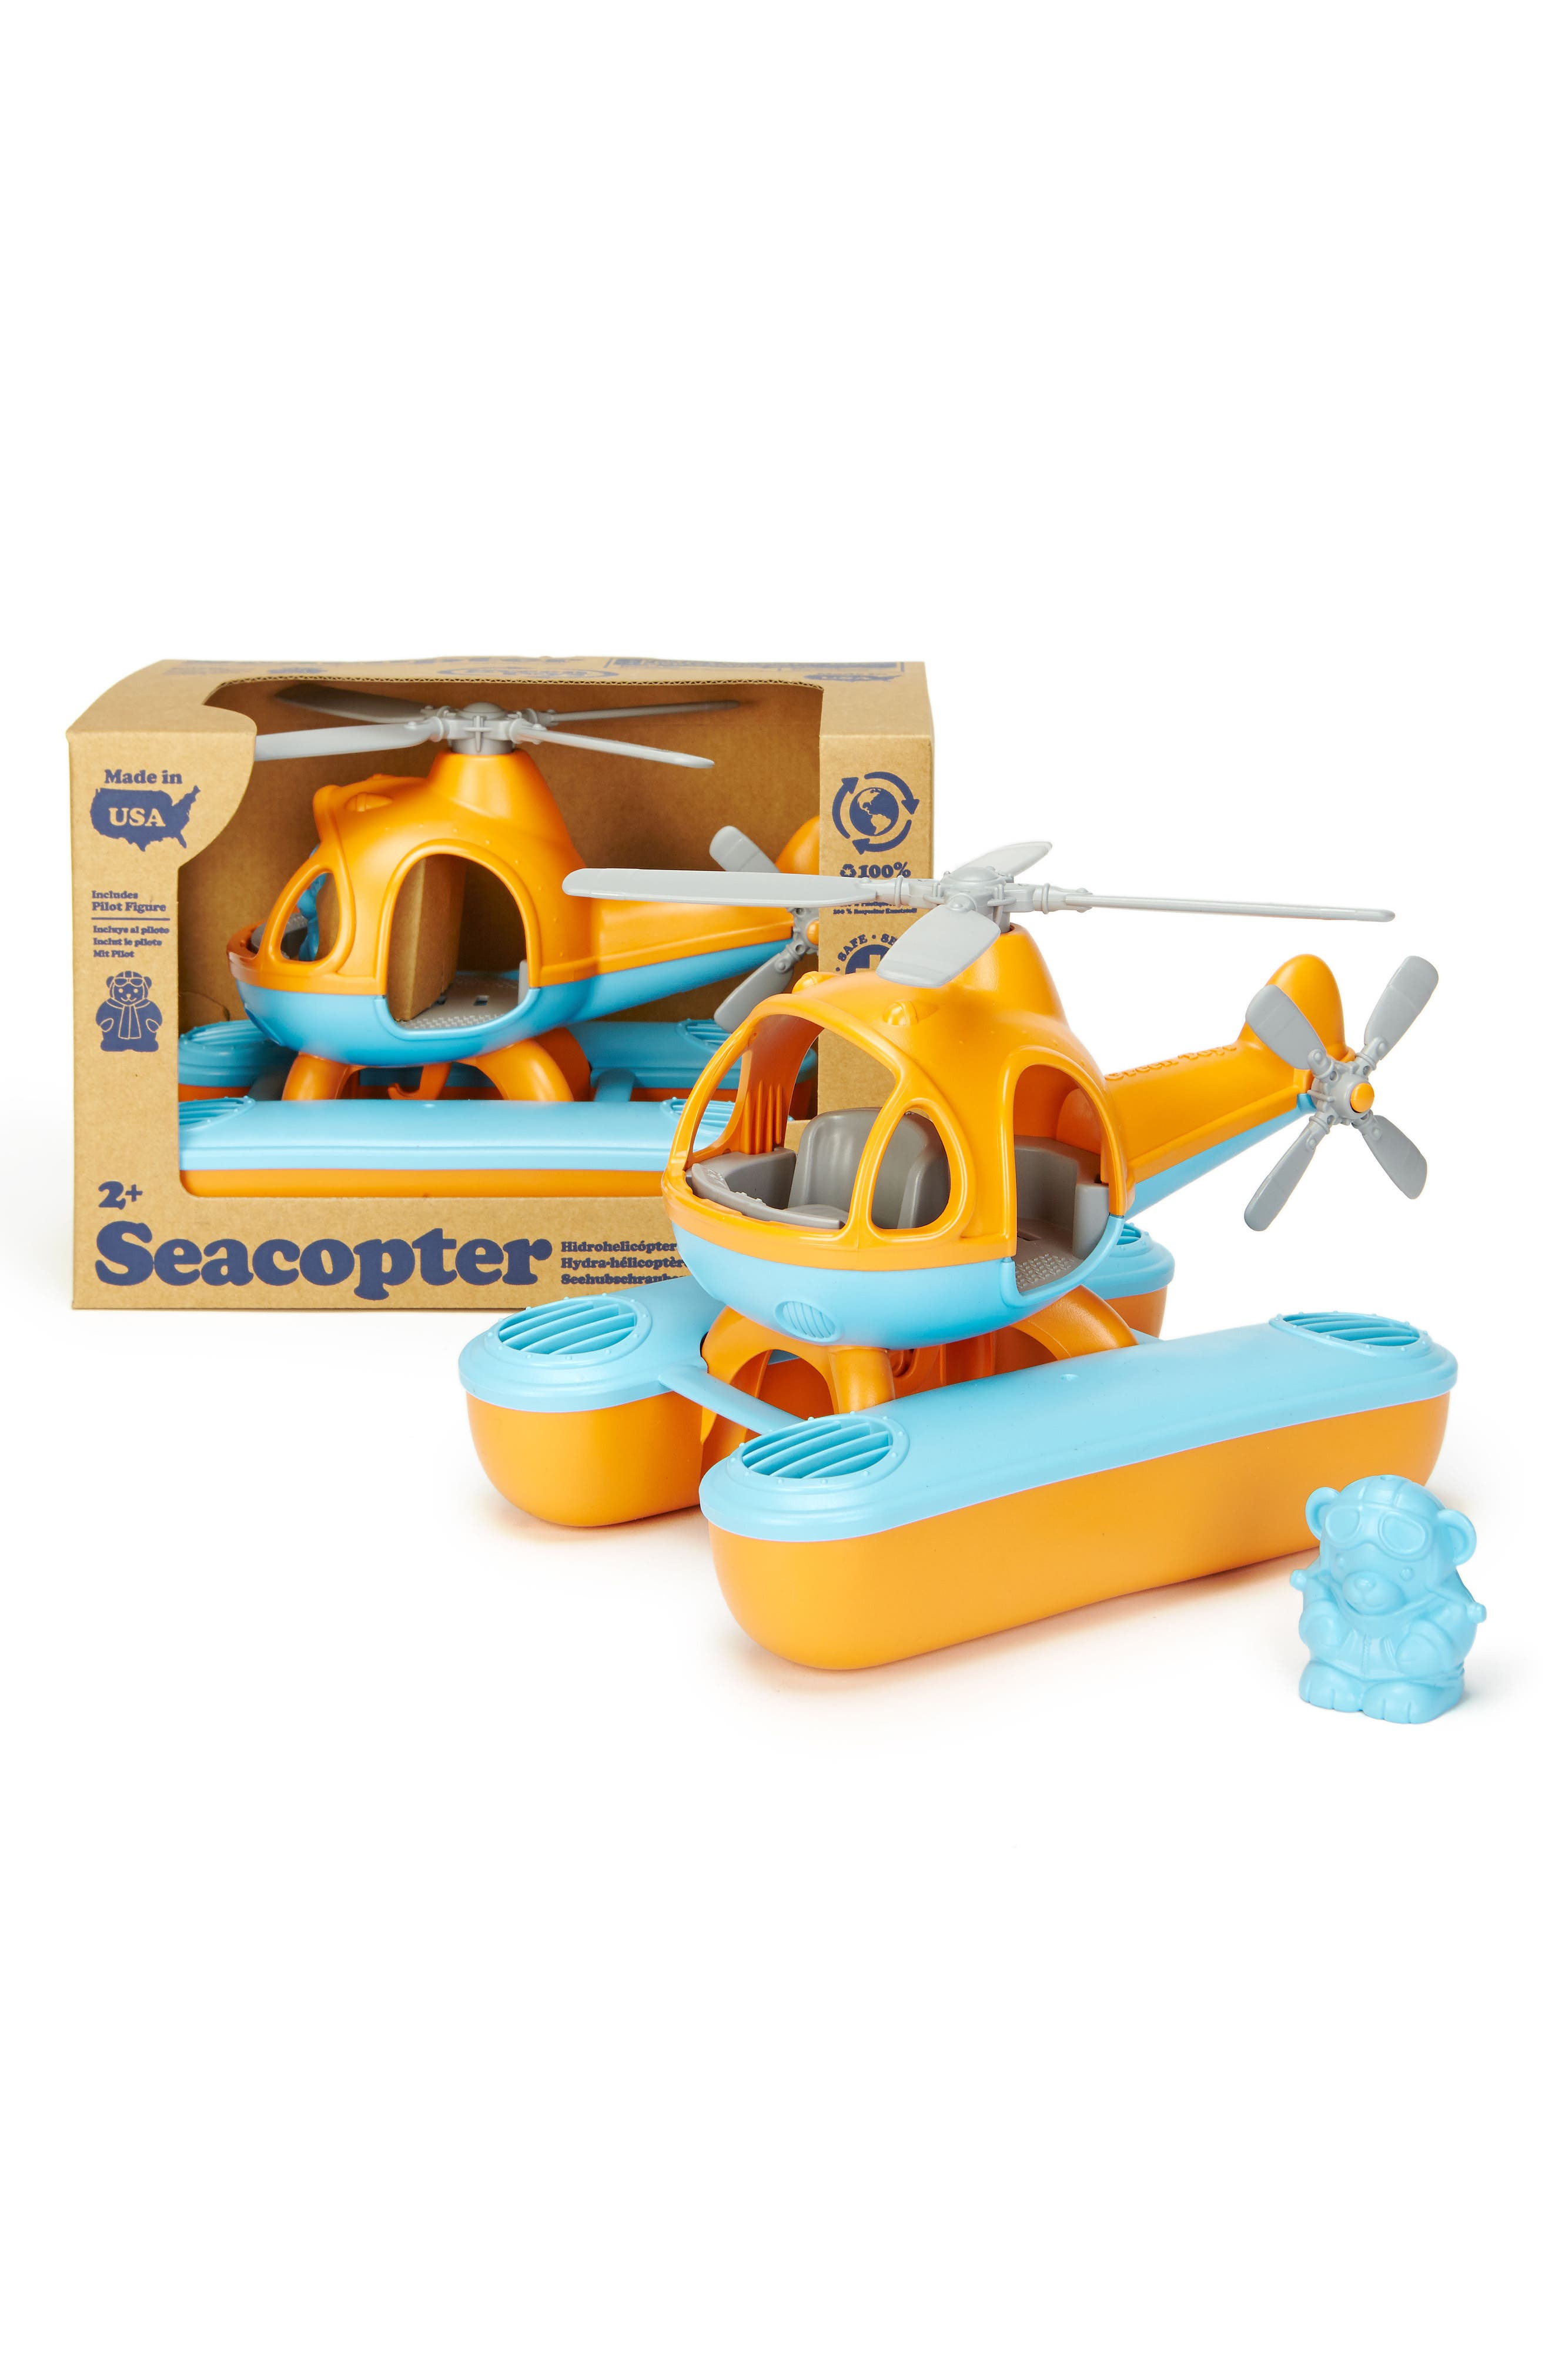 Two-Piece Seacopter Toy,                             Alternate thumbnail 5, color,                             Orange